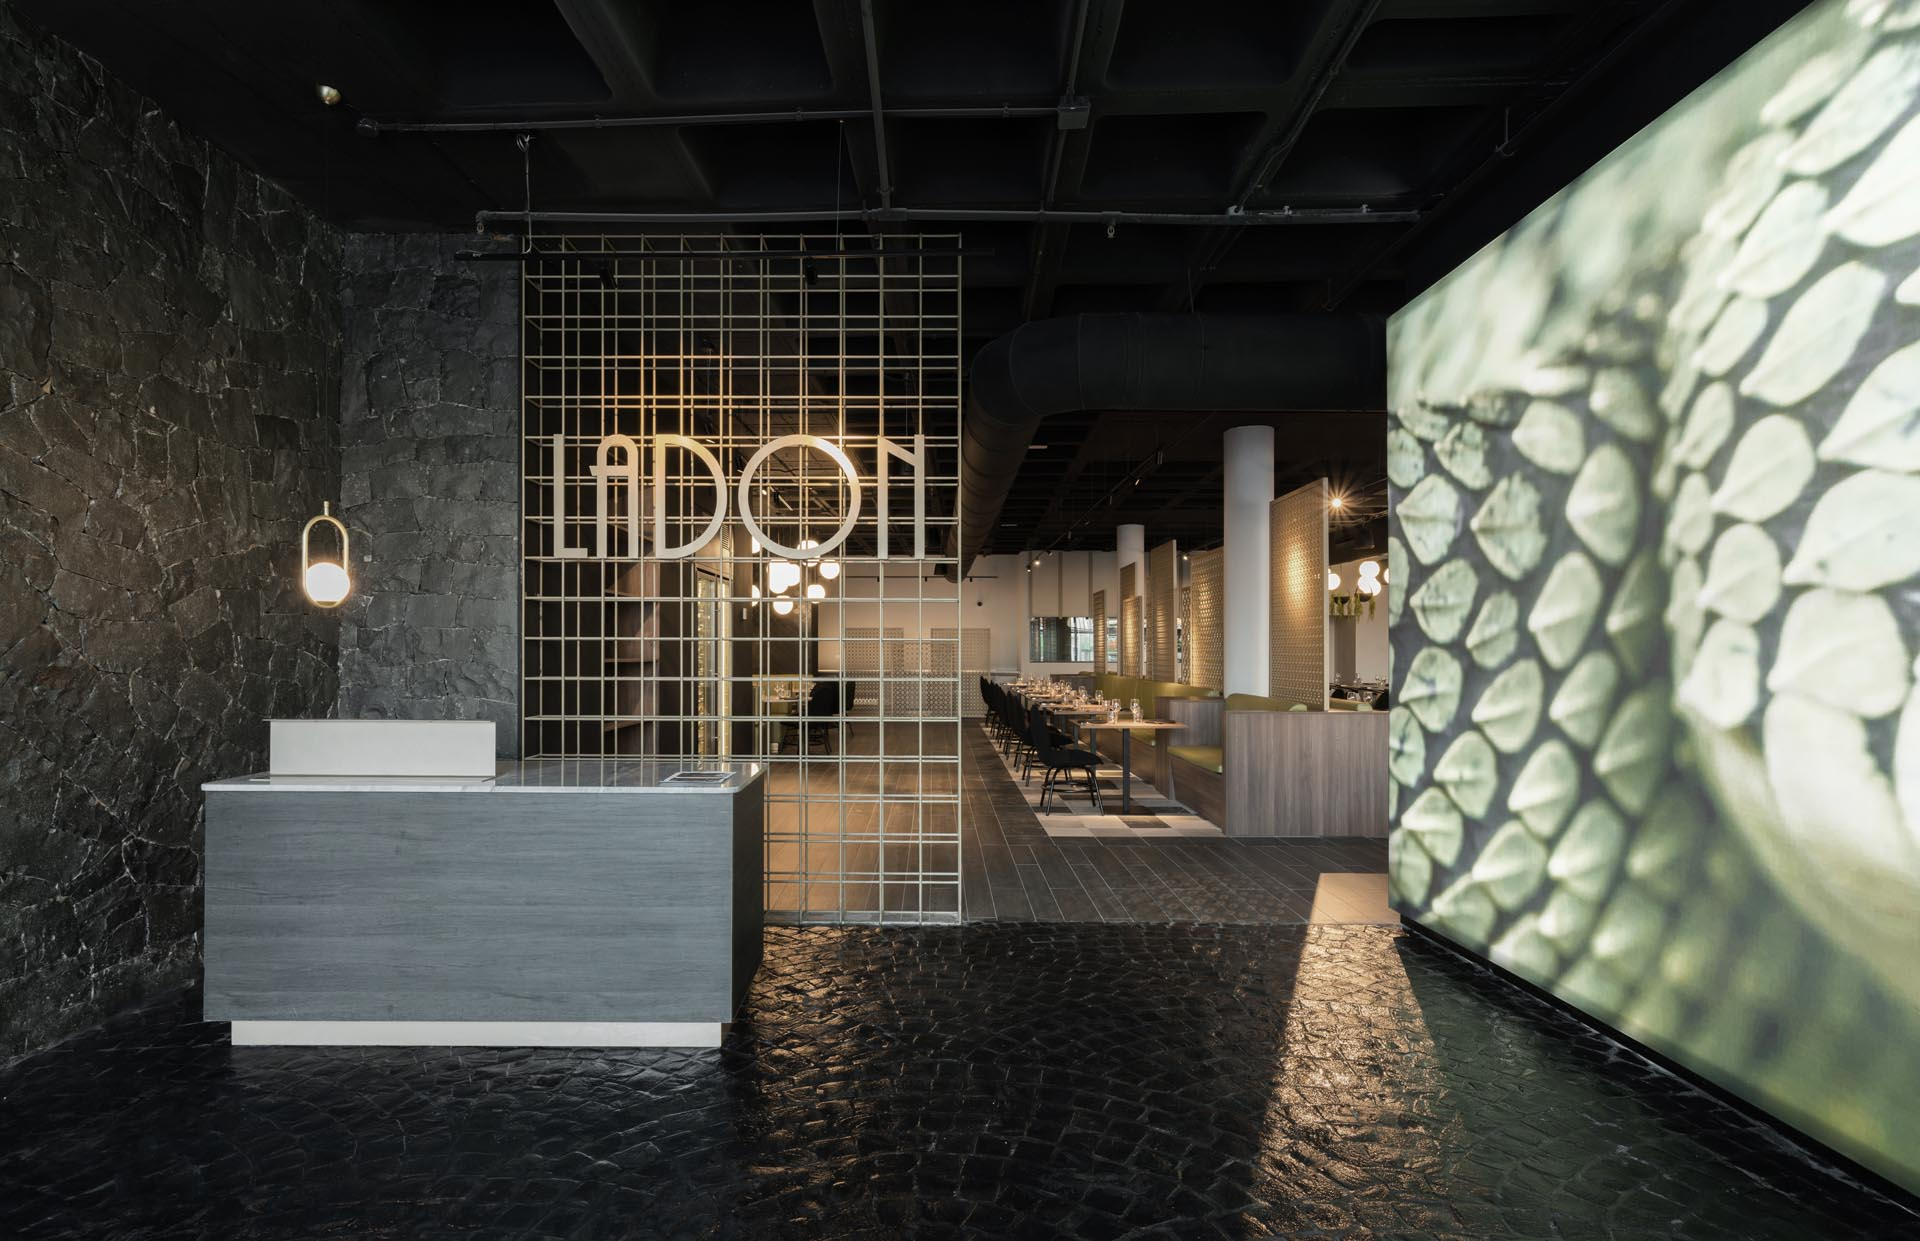 A restaurant lobby inspired by dragons with Volcanic stone walls and floors, copper structures, black ceramic scales and a large image of a dragon's skin.